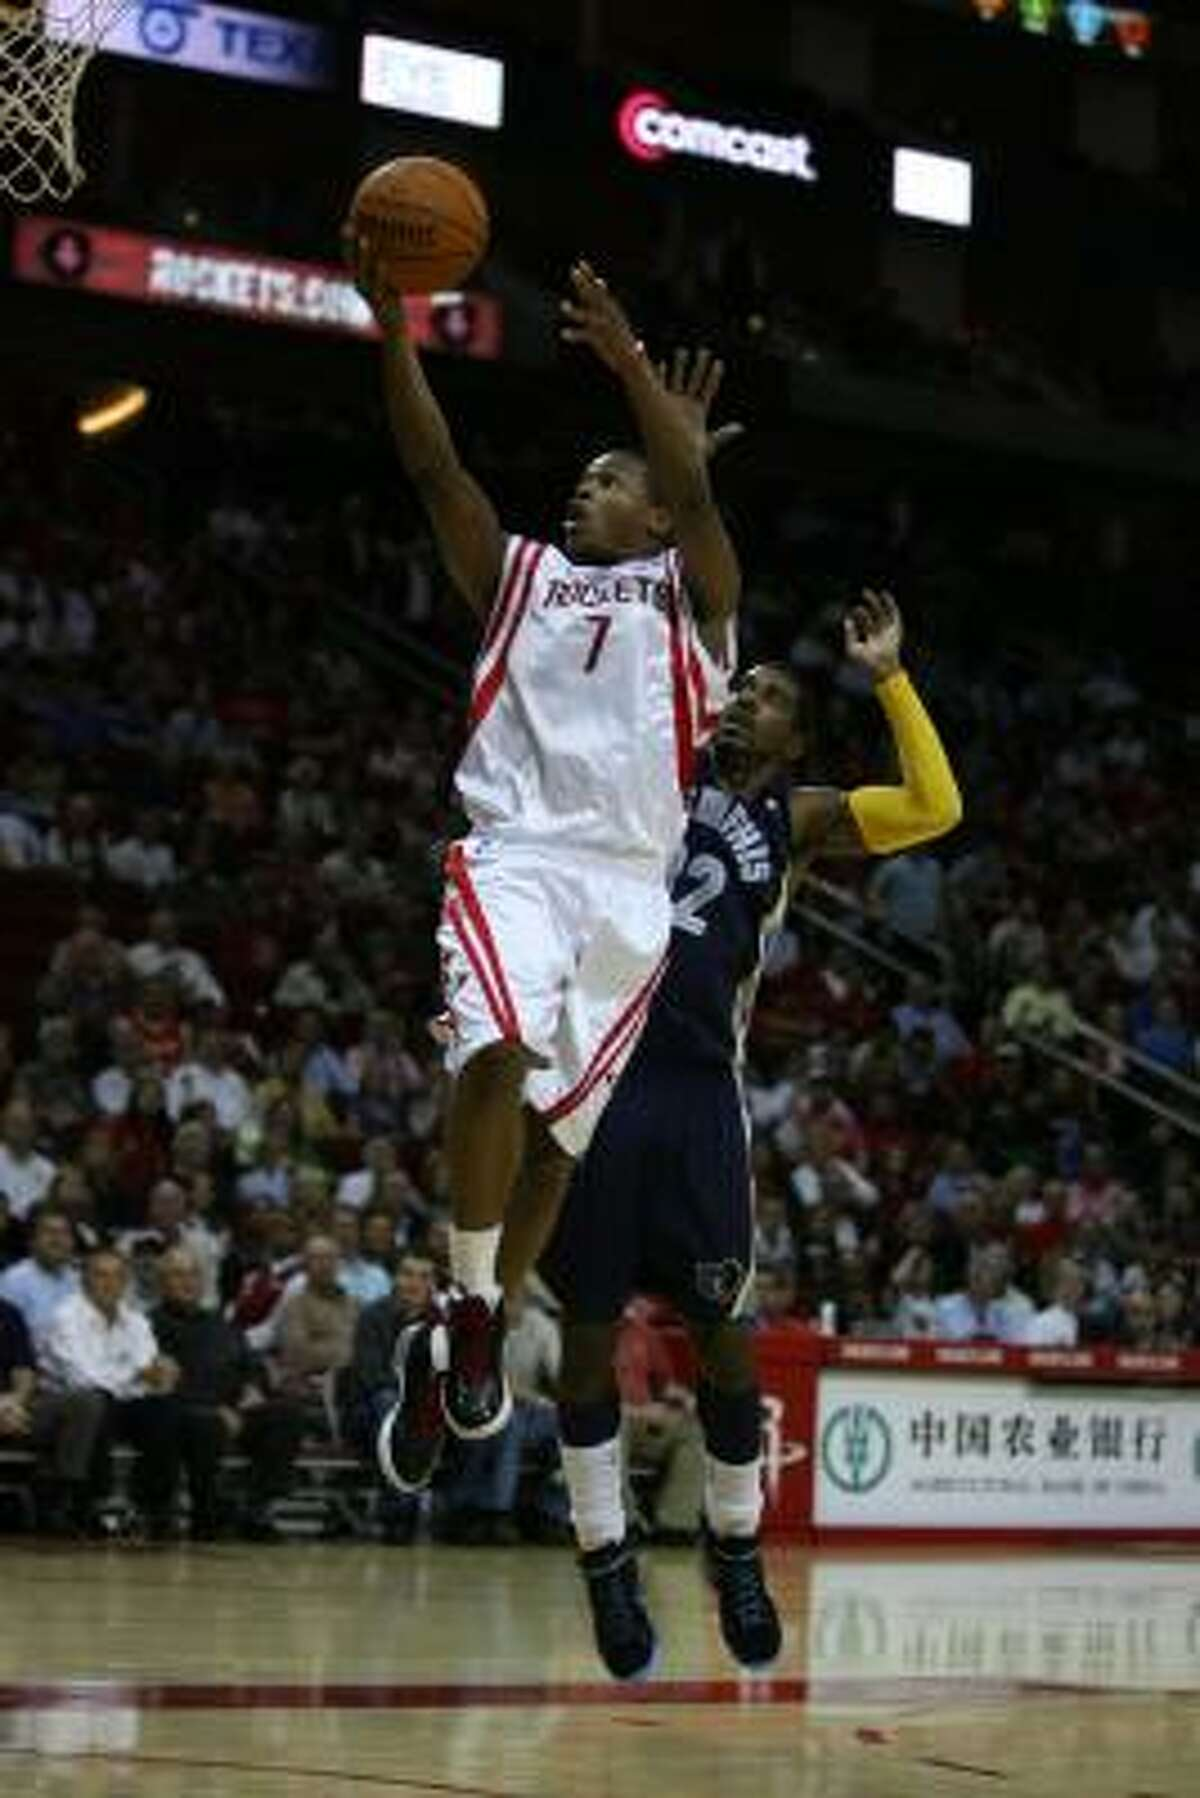 Kyle Lowry scored eight points, pulled in eight rebounds and had 10 assists.